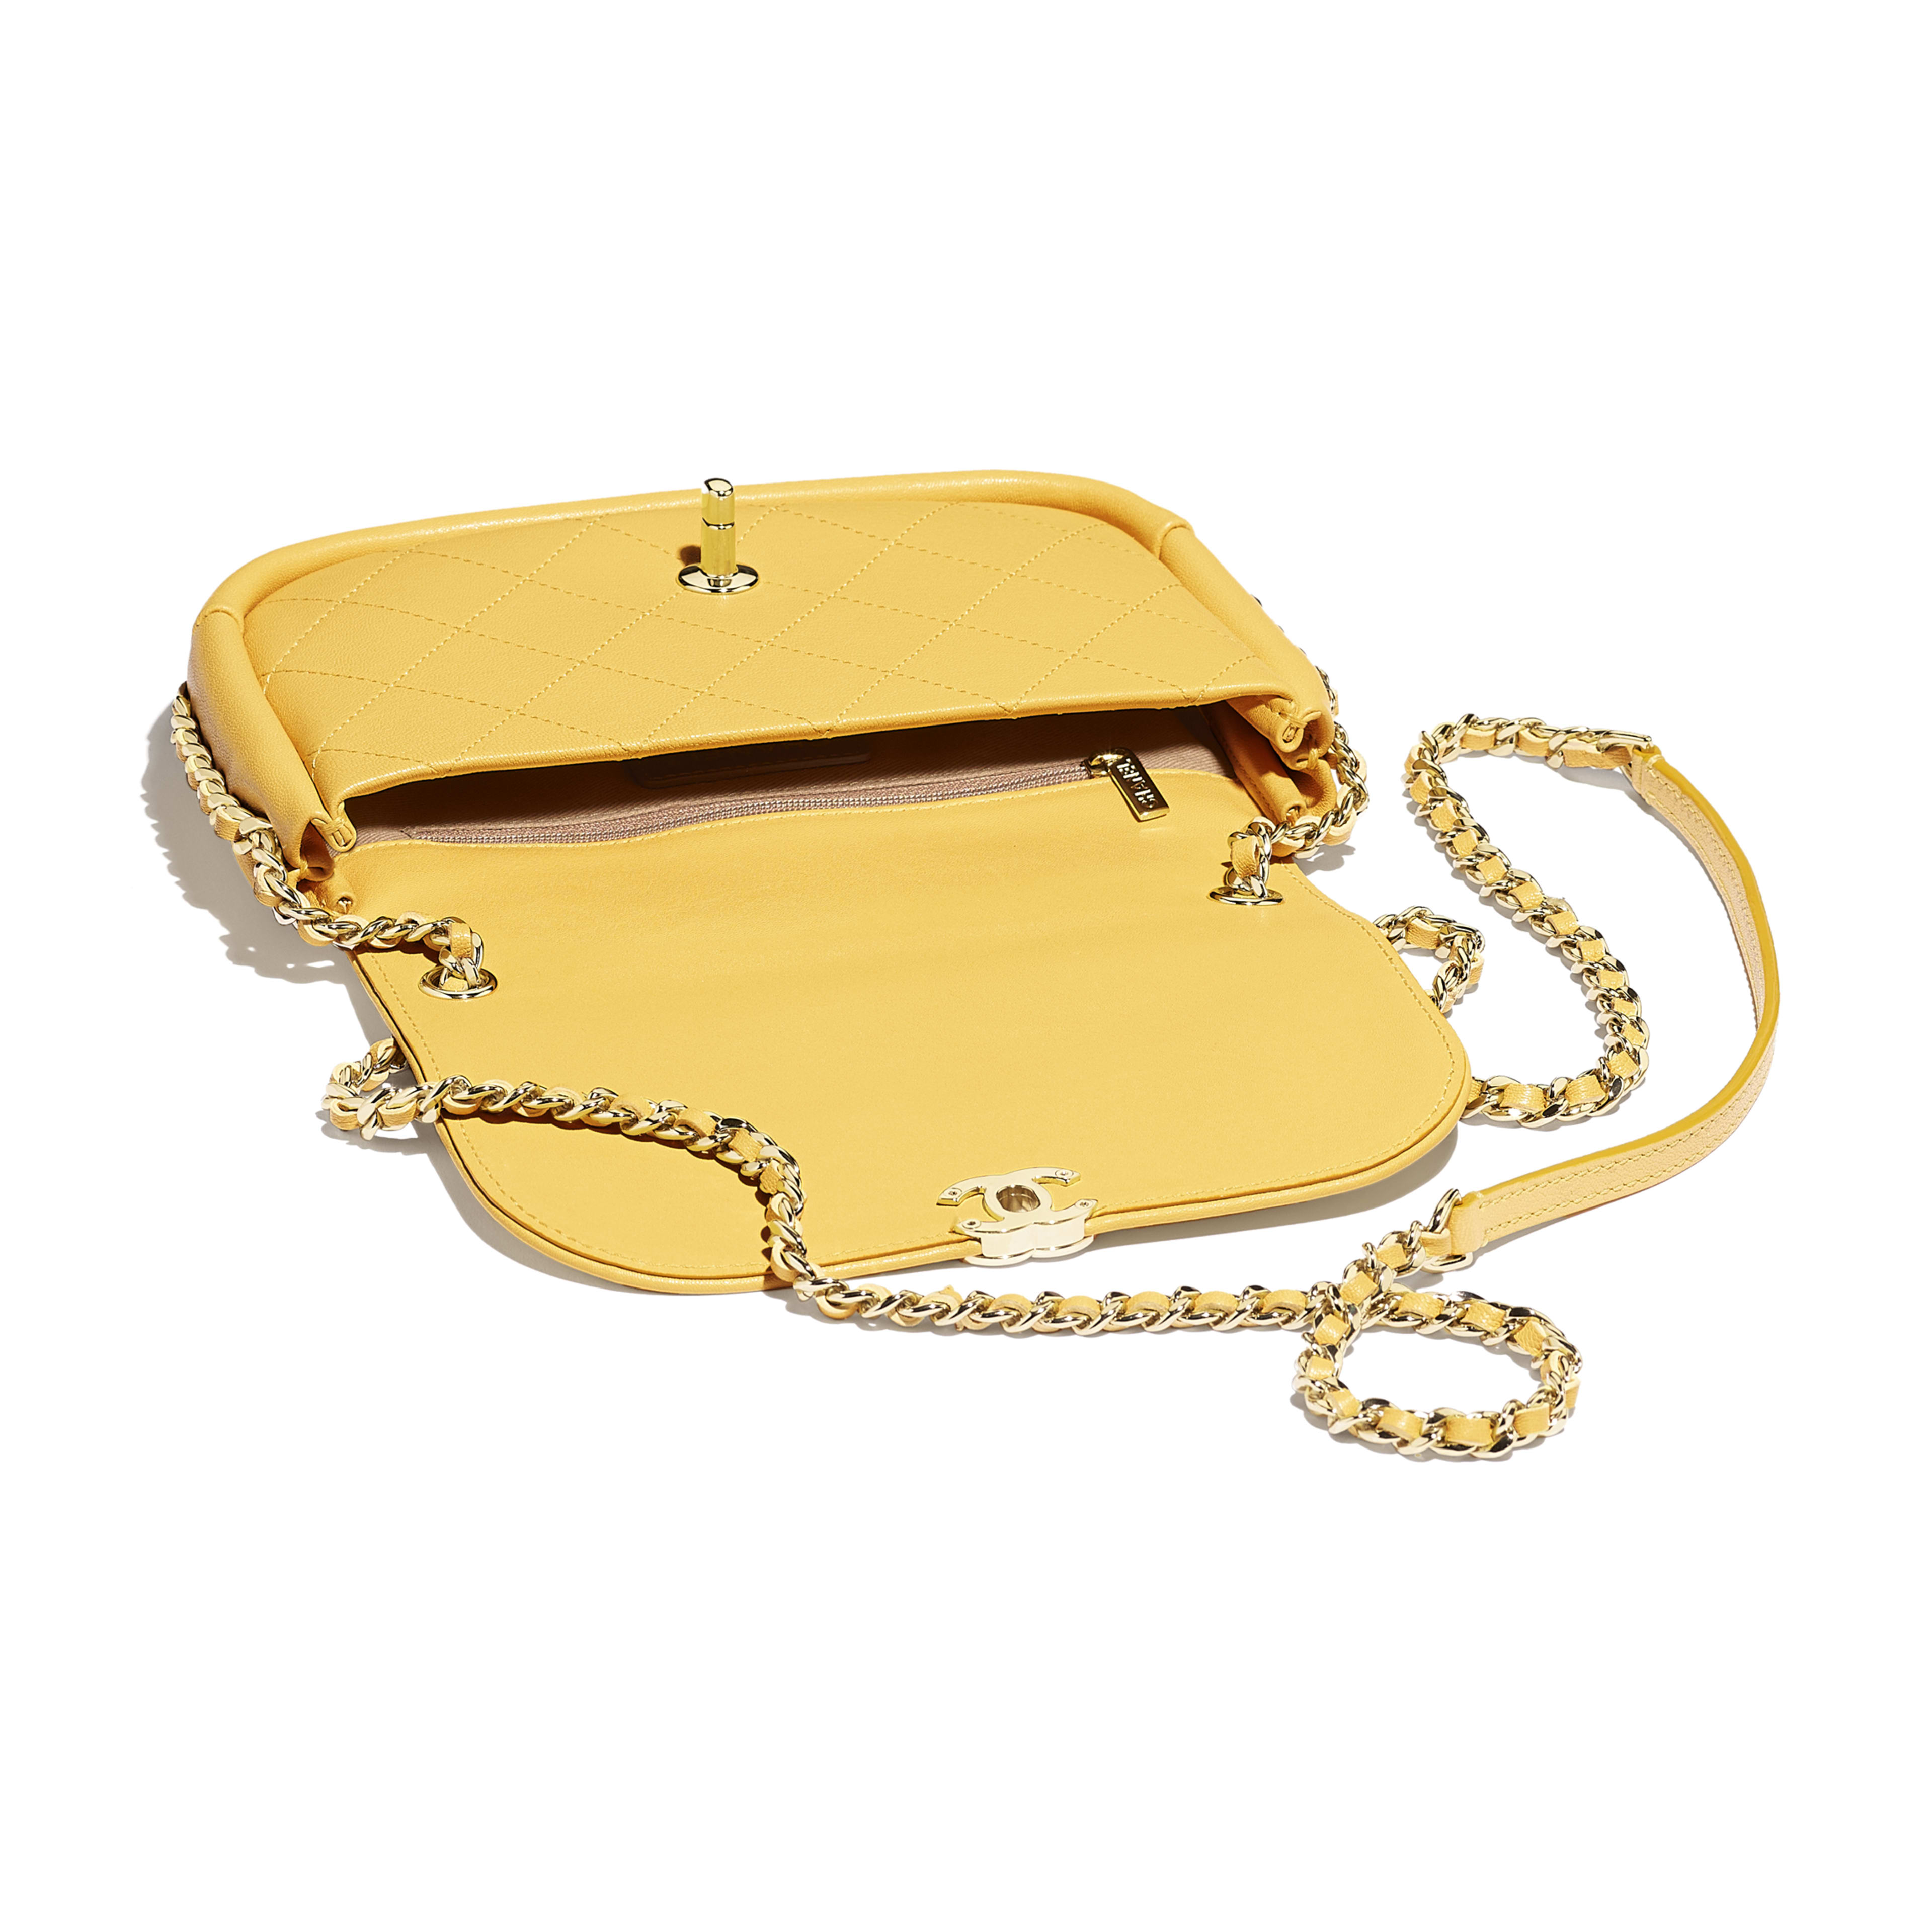 Flap Bag - Yellow - Lambskin & Gold-Tone Metal - Other view - see full sized version